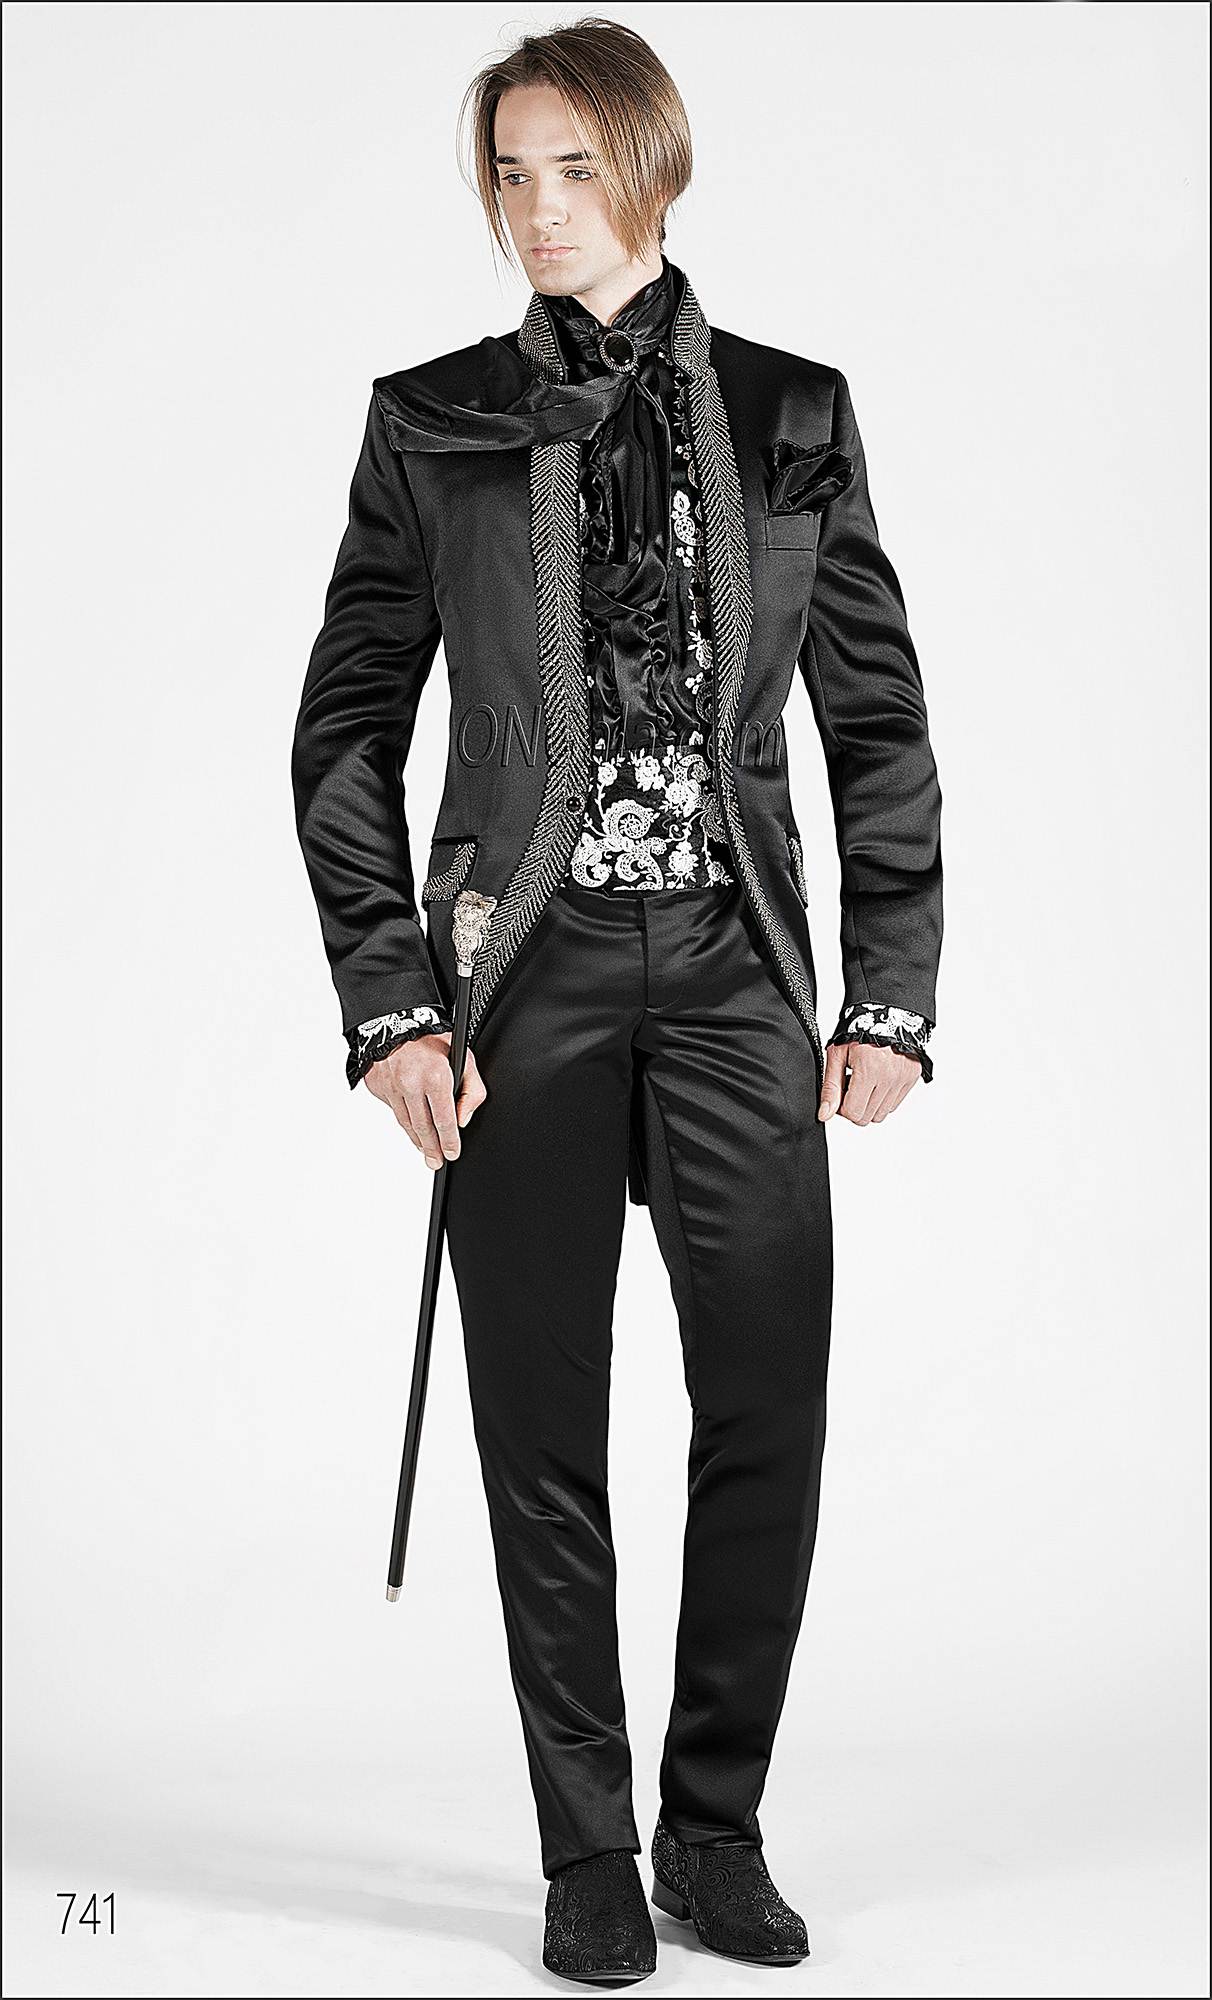 Black Satin wedding Suits for groom with Diamante Trimming